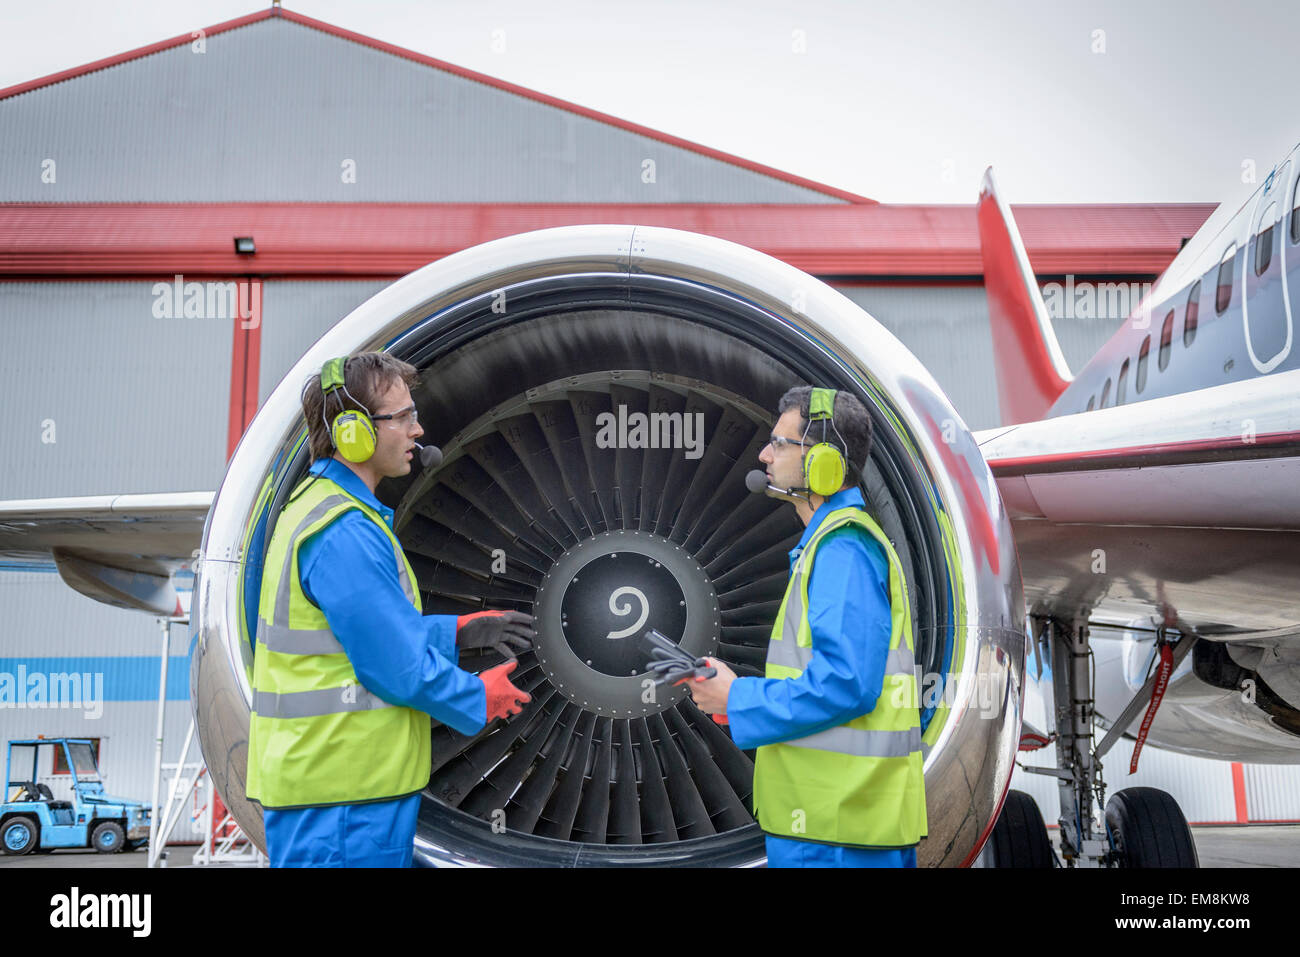 Airside engineers inspecting jet engine of aircraft - Stock Image